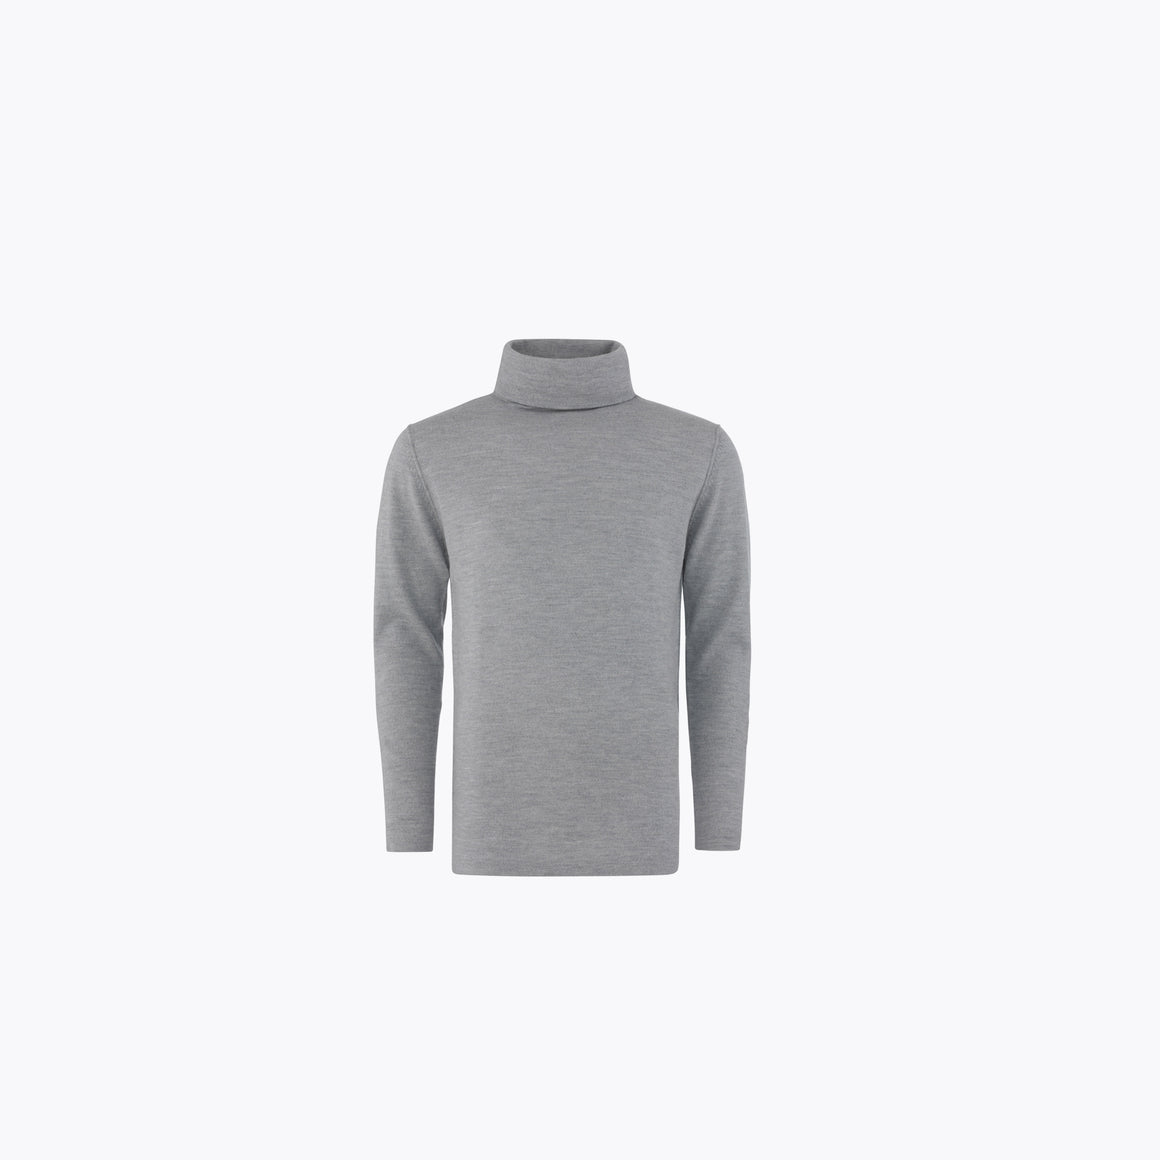 Jacamar Knit Grey